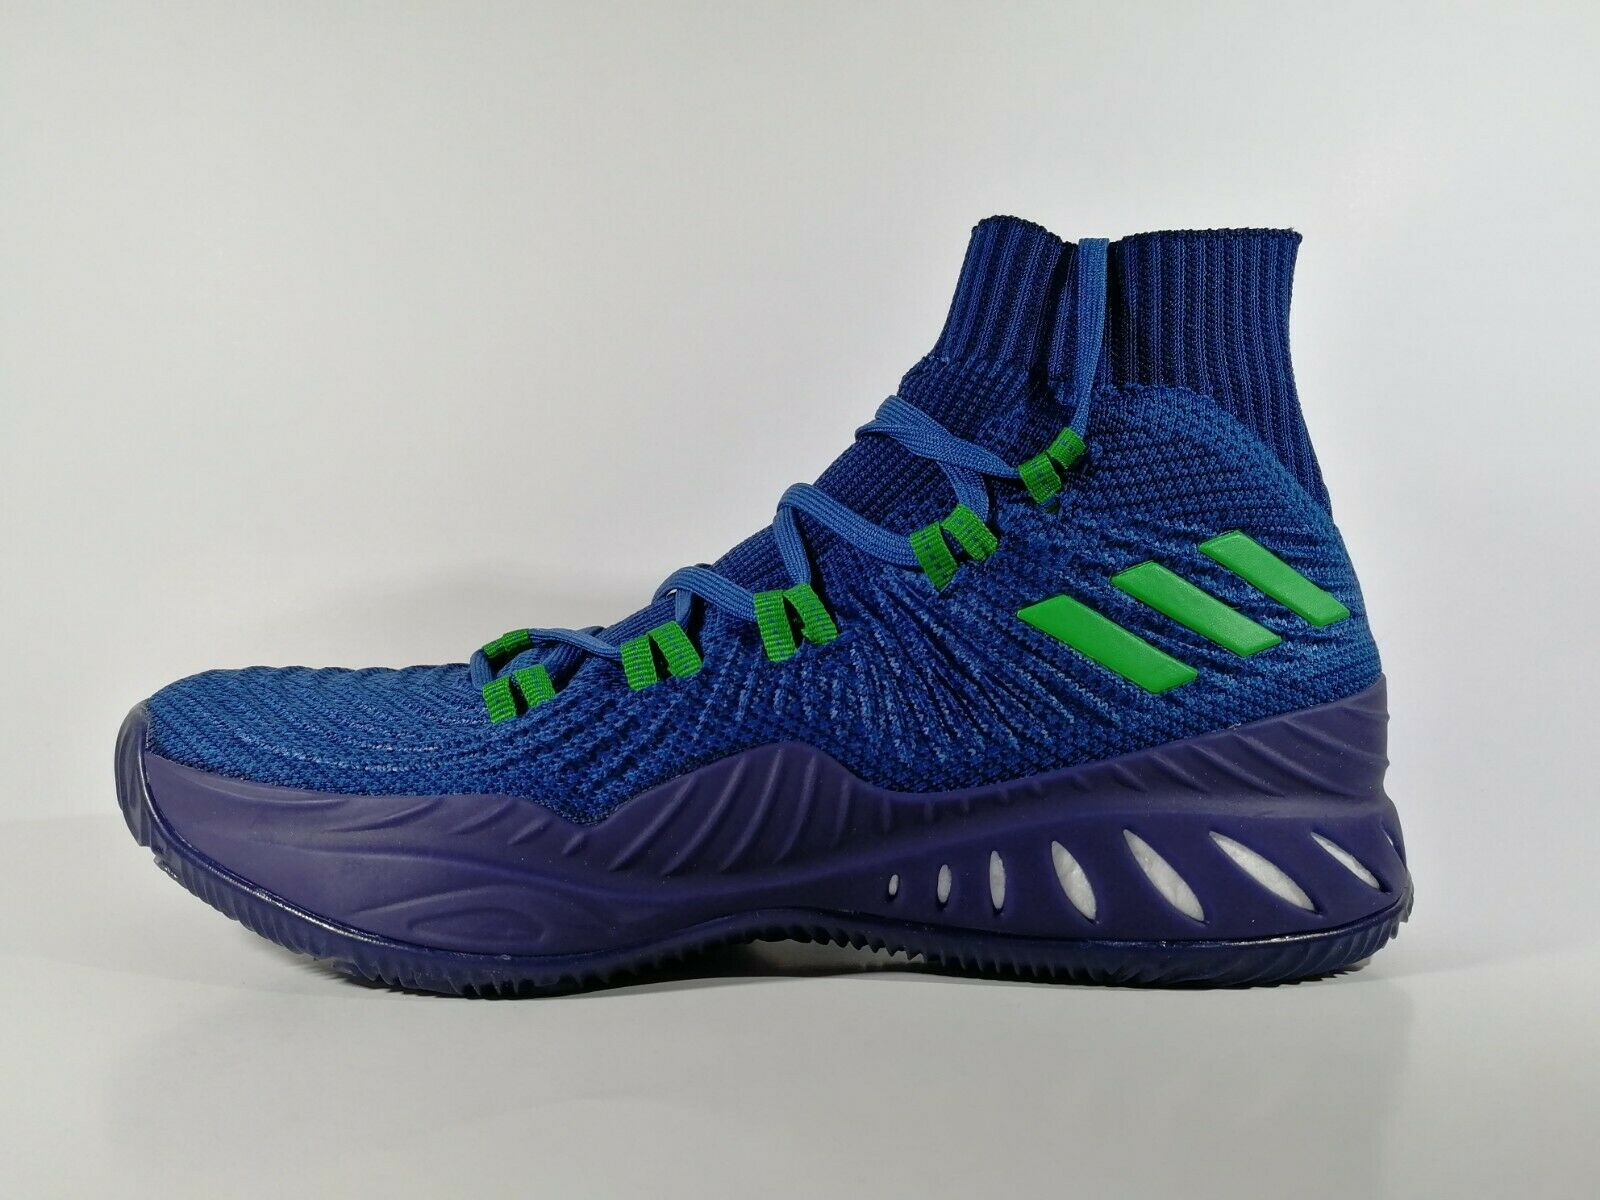 Adidas Crazy Explosive 2017 Primeknit shoes size 8.5US 42EU New with box